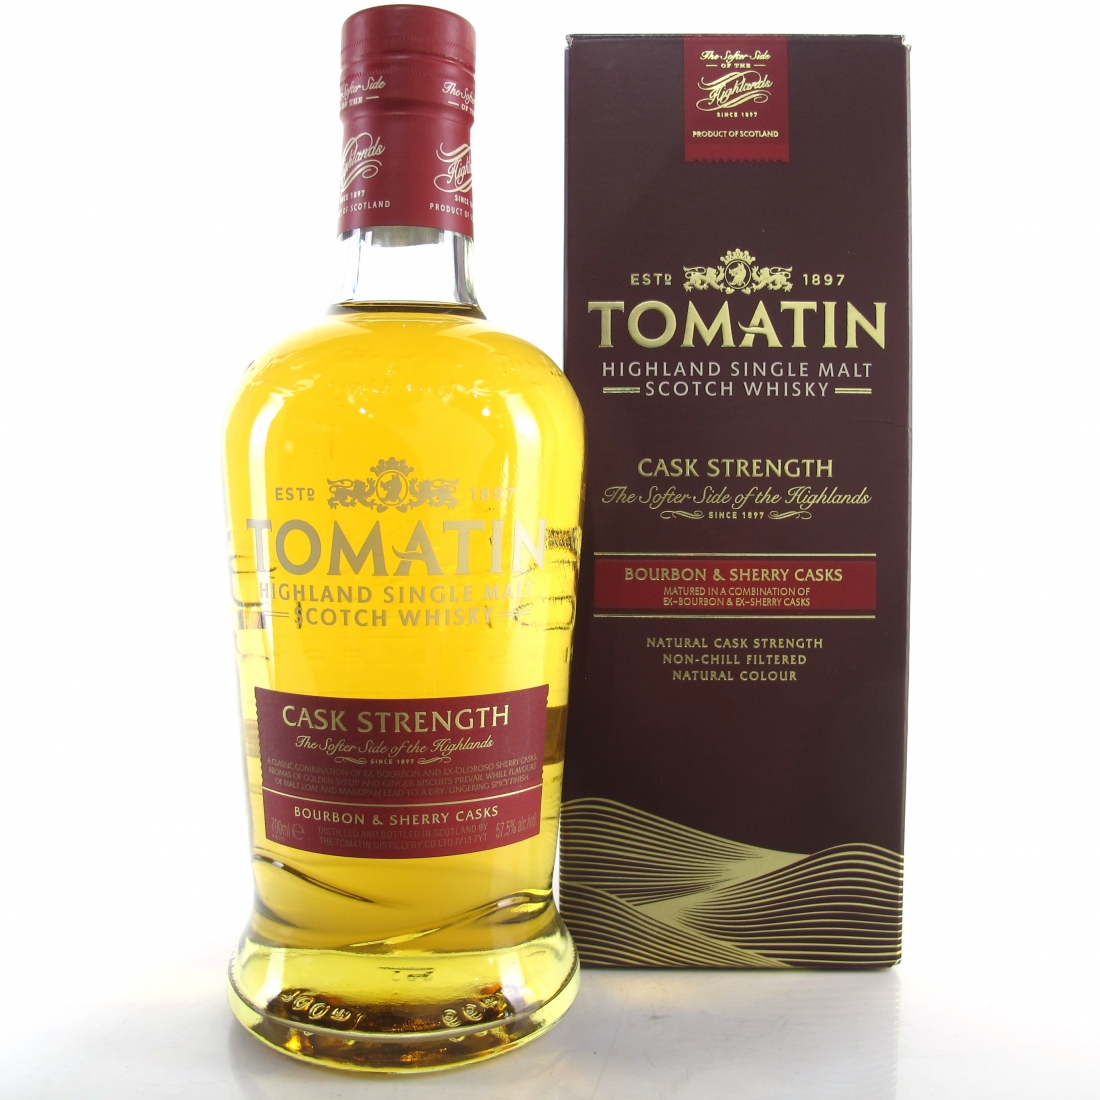 Tomatin Cask Strength / Bourbon and Sherry Casks